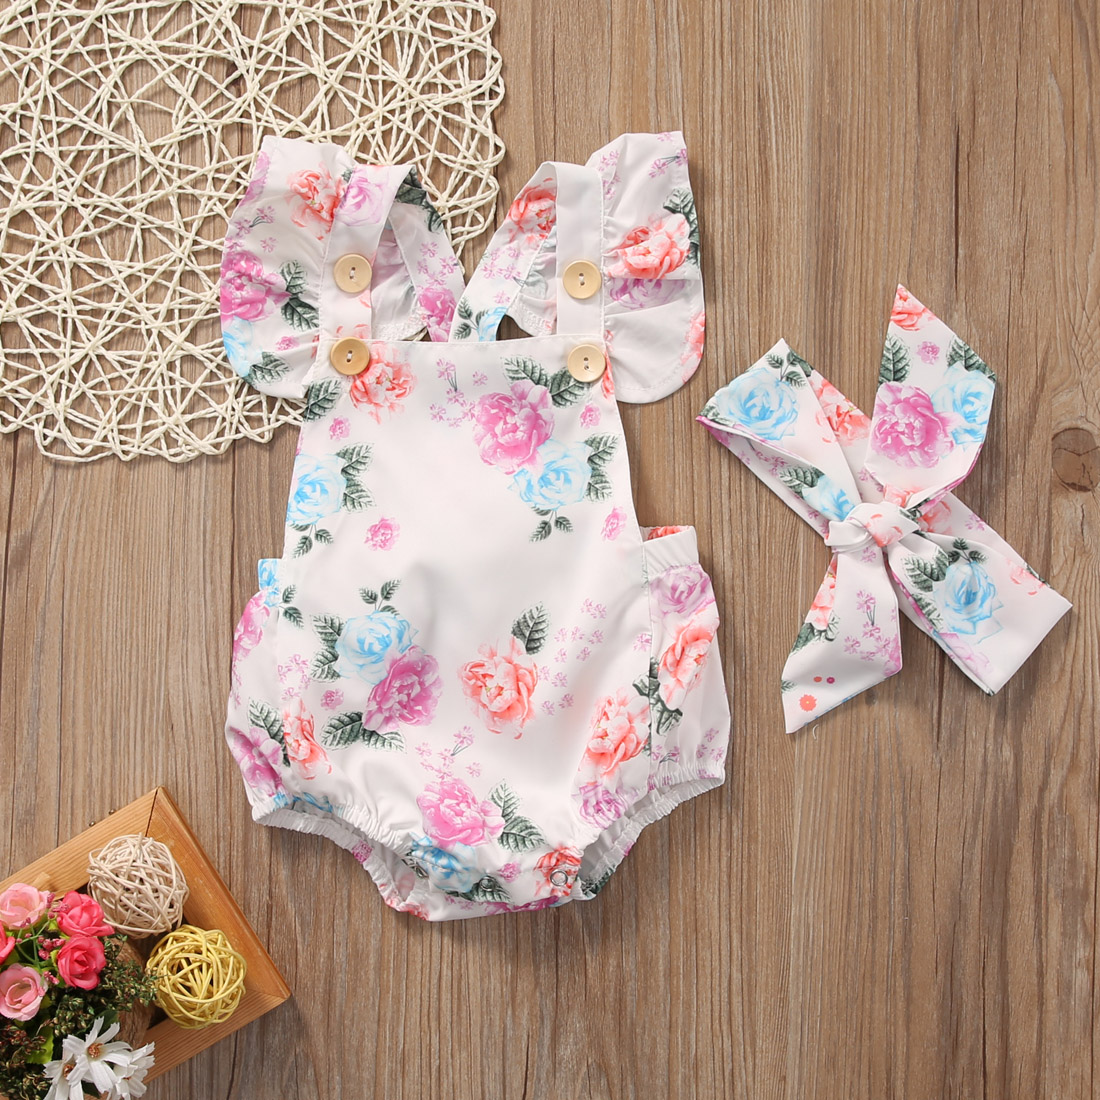 Cute Kids Baby Girls Floral Sweet   Romper   One-pieces Summer Clothes + Headband Sunsuit Children Clothing Sets